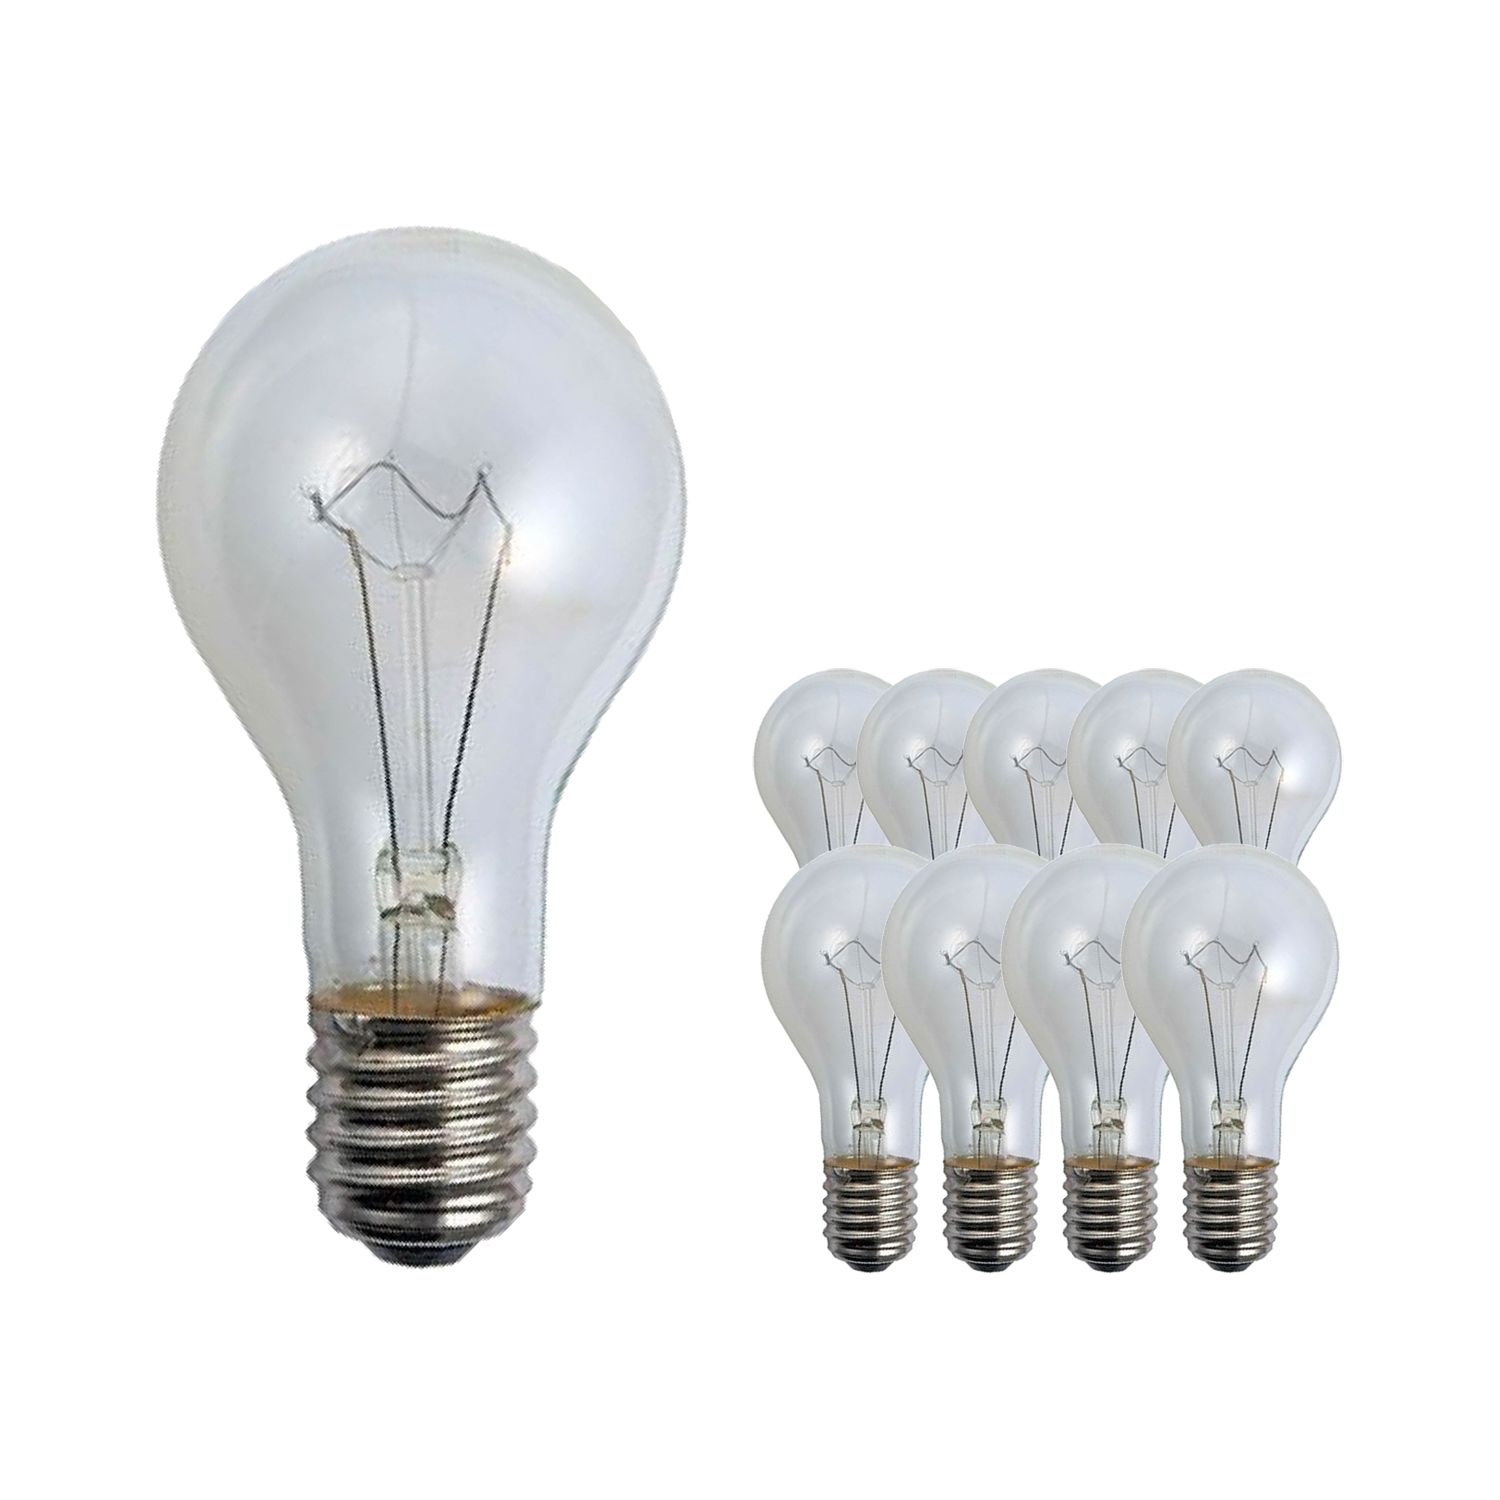 Multipack 10x Standard Incandescent Bulb Clear E40 300W 230V